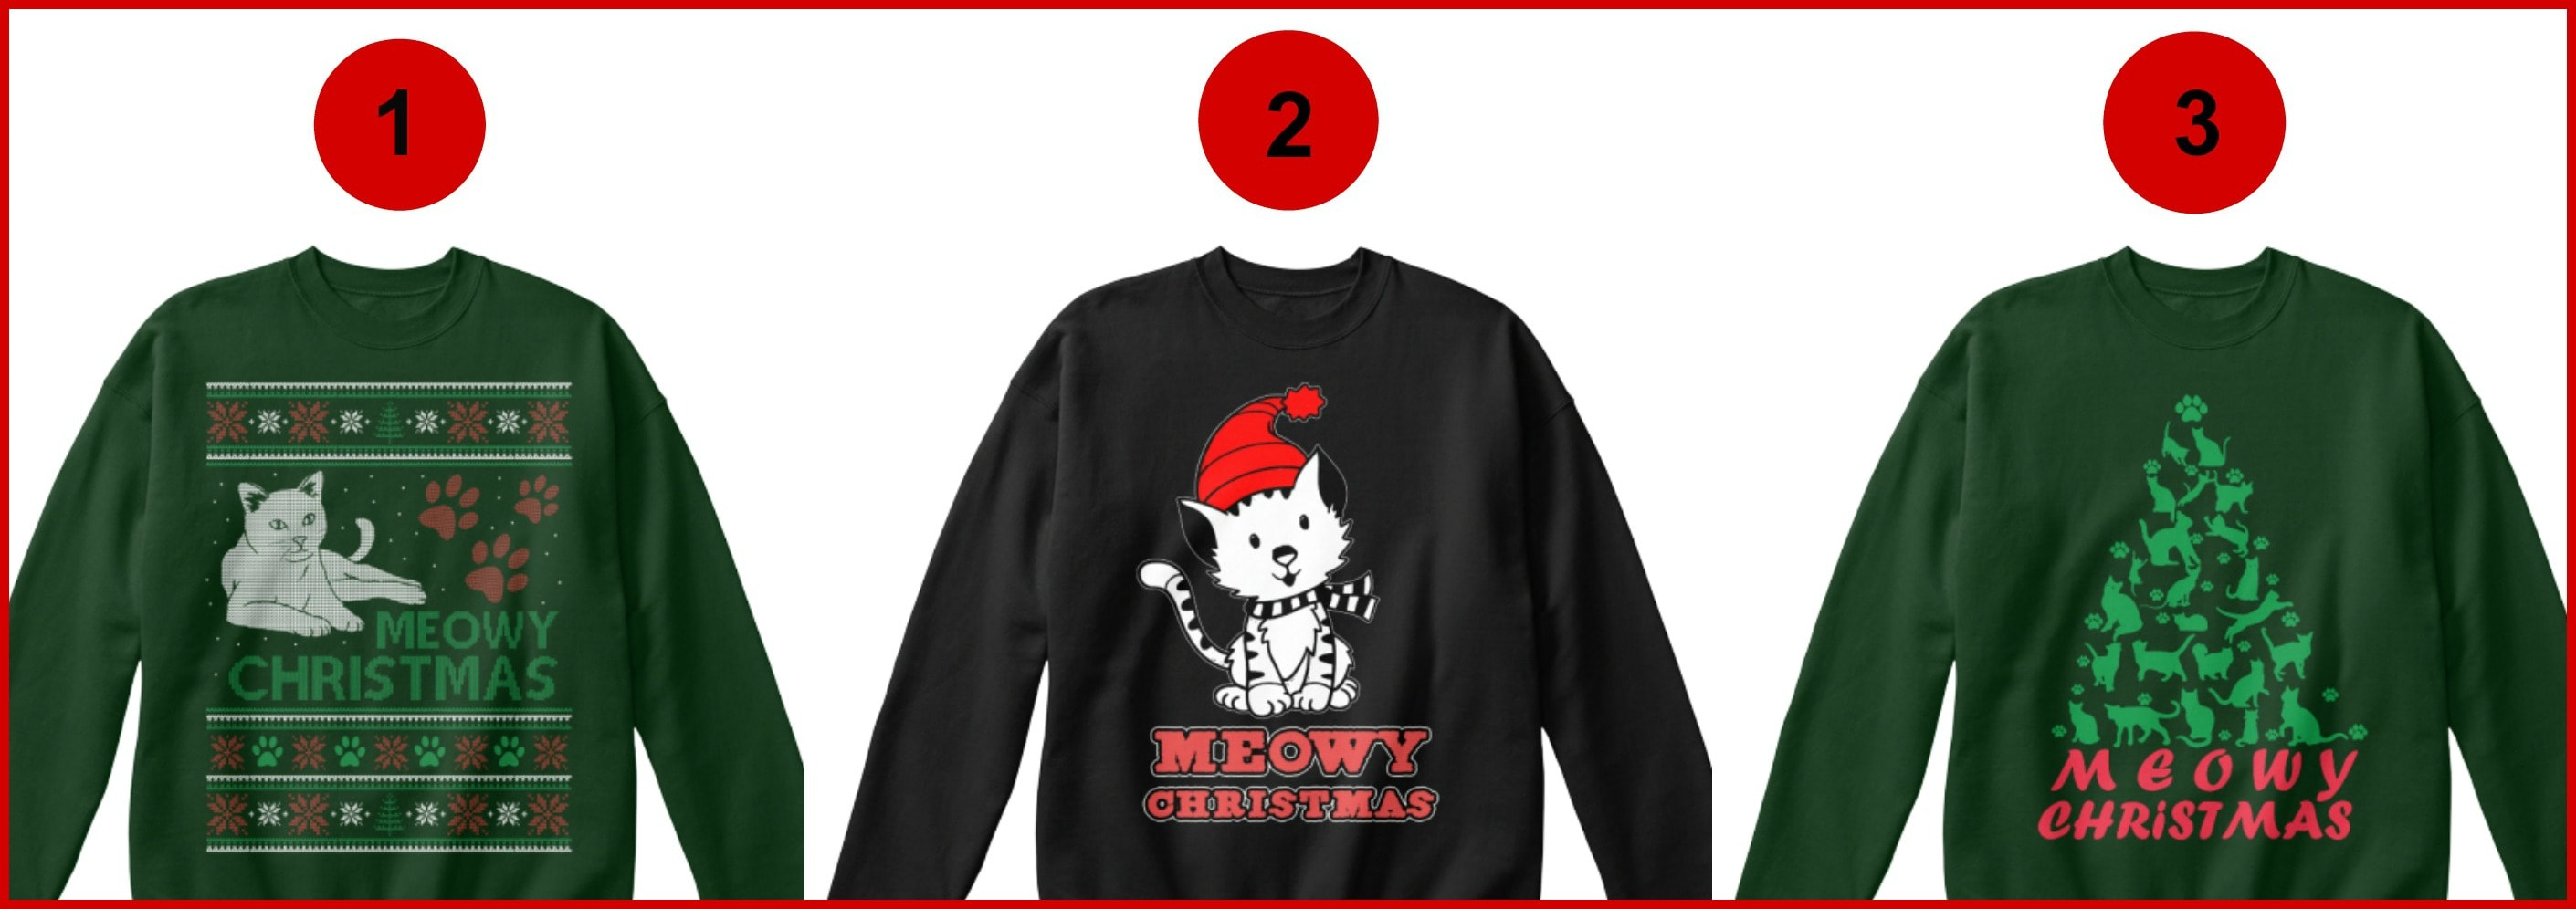 cdb357a42f Christmas Holiday T-Shirts - CafePress